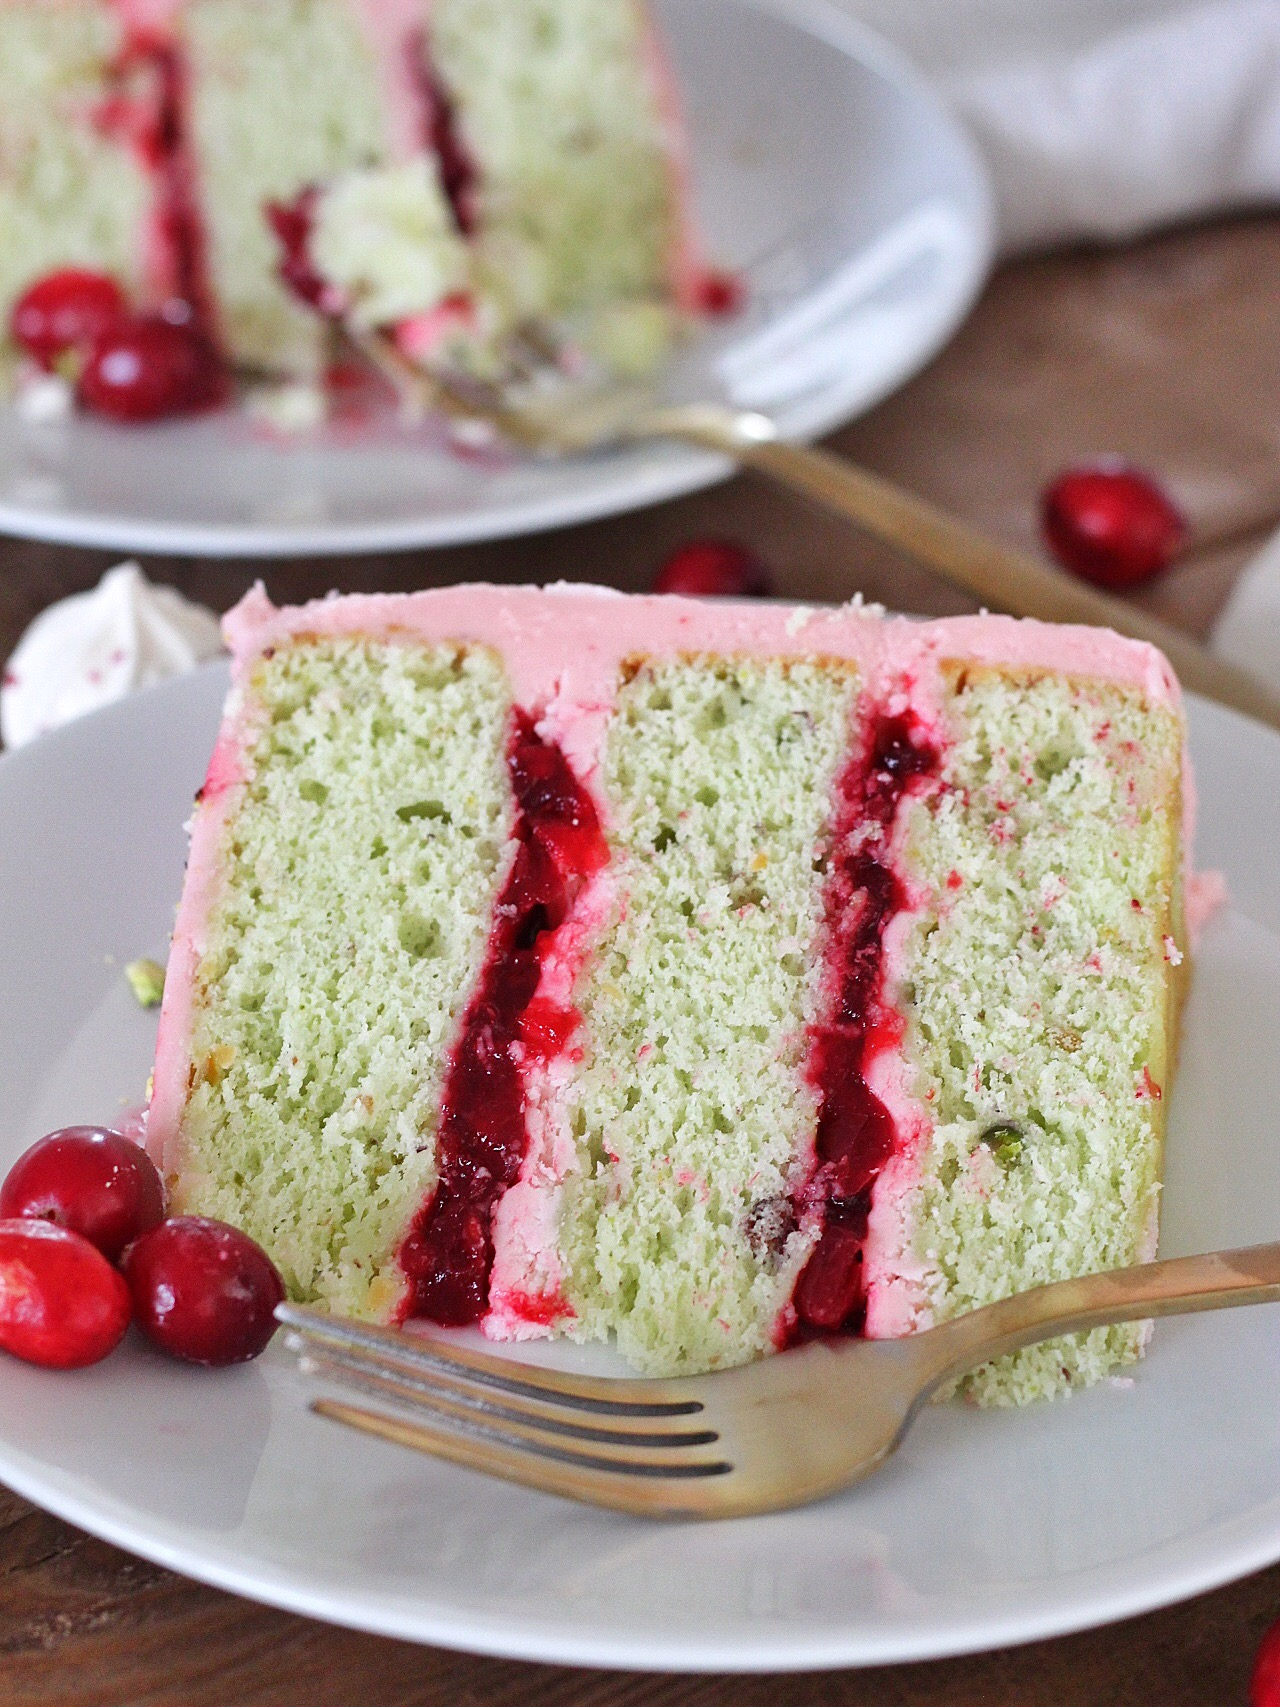 Pistachio Cranberry Cake - Pistachio cake layers with cranberry compote and cranberry buttercream. #cakebycourtney #pistachiocranberrycake #pistachiocake #cranberry #christmascake #easycakerecipe